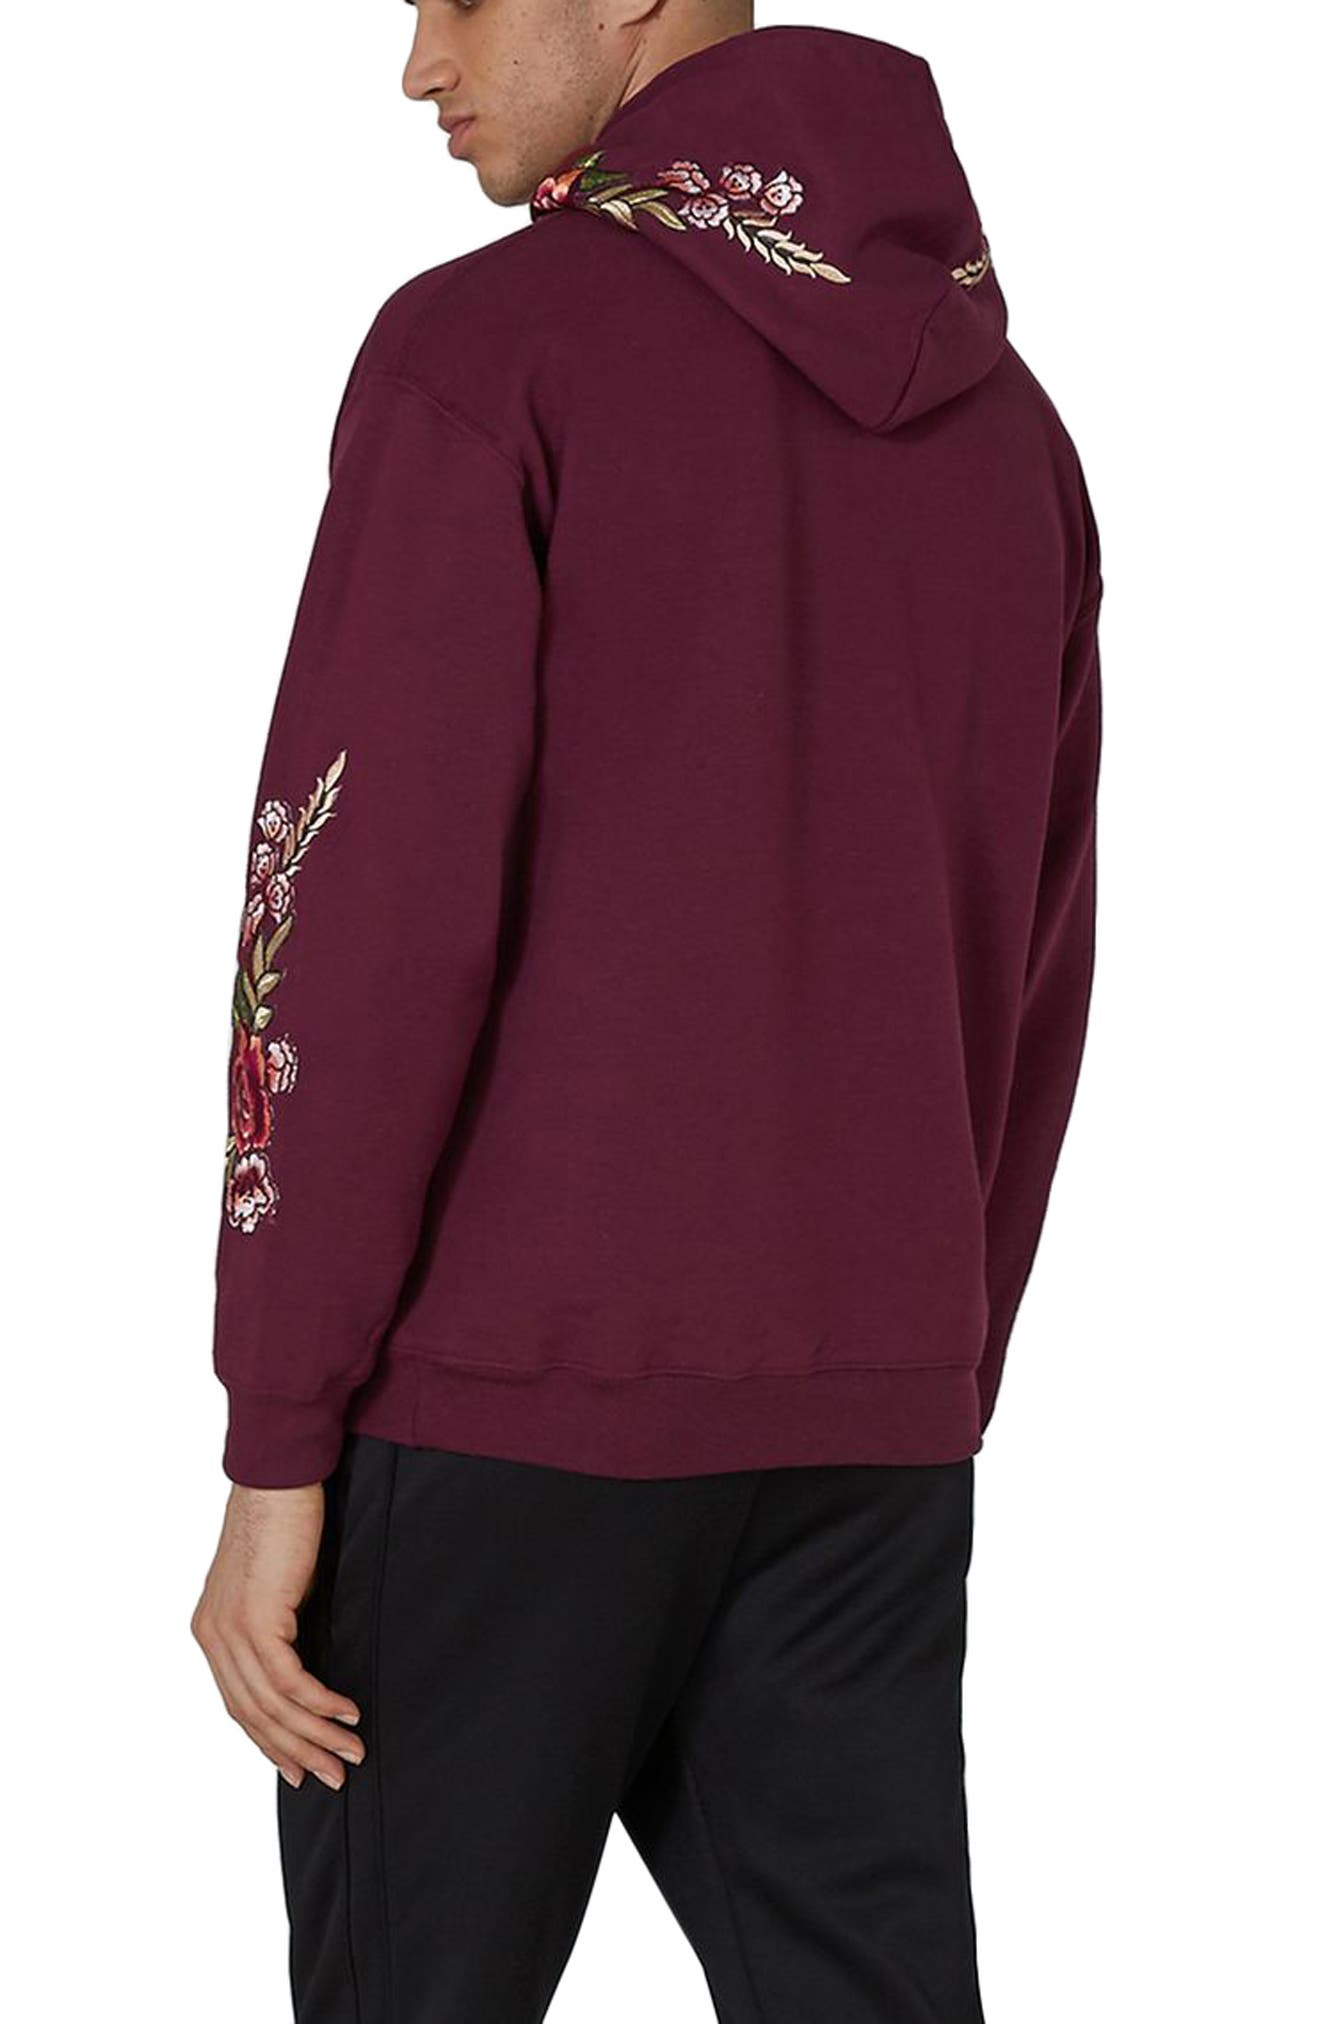 Rose Embroidered Hoodie,                             Alternate thumbnail 2, color,                             Burgundy Multi